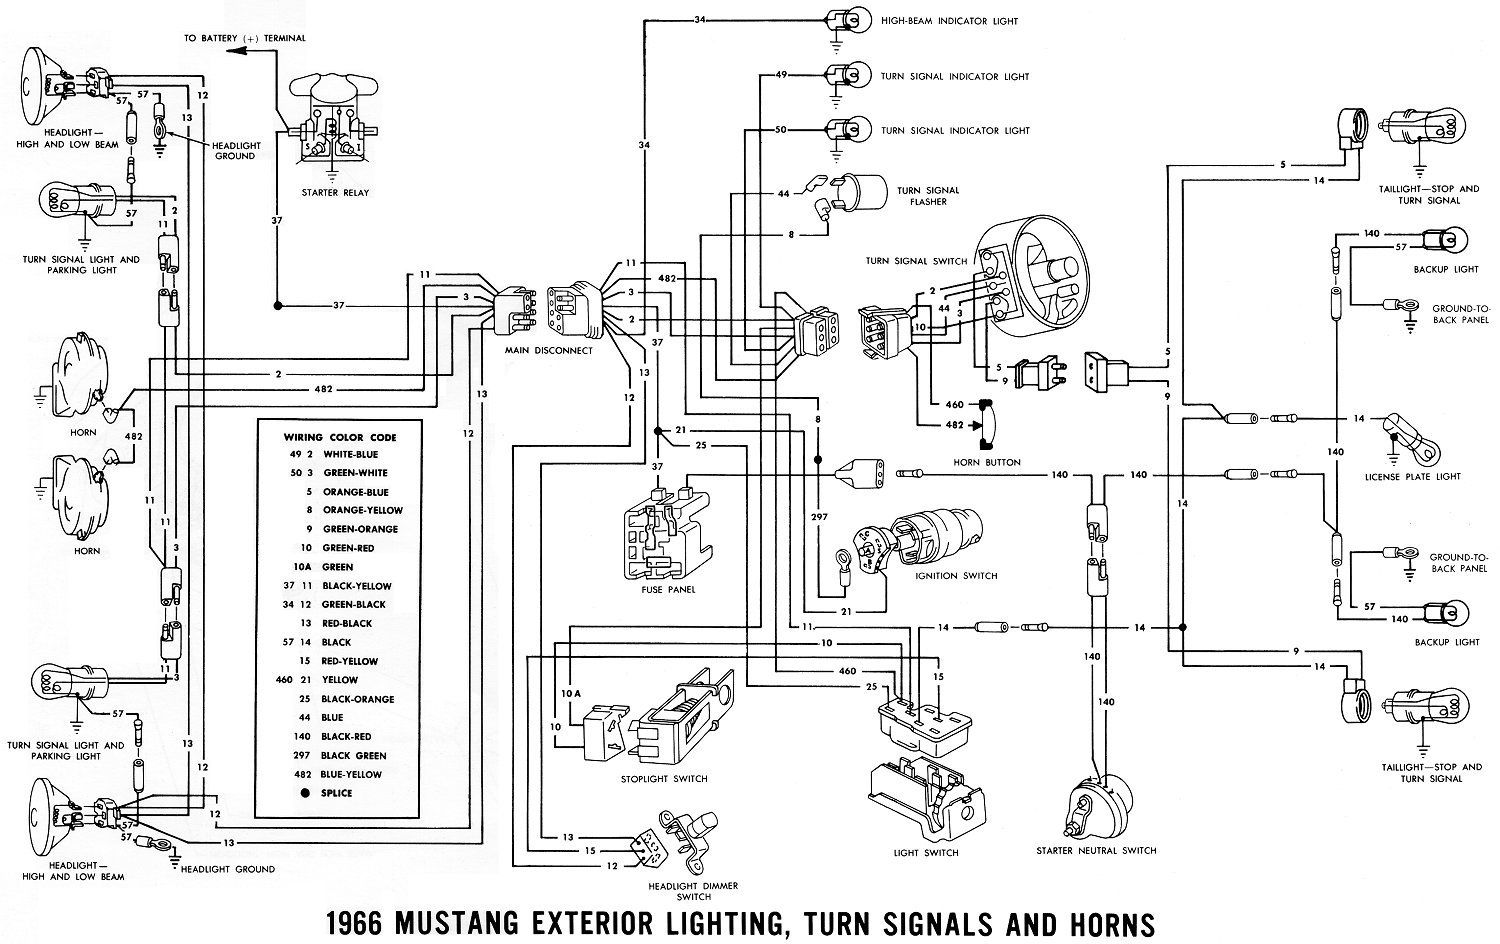 small resolution of 1966 mustang wiring diagrams average joe restoration in 1966 mustang wiring diagram